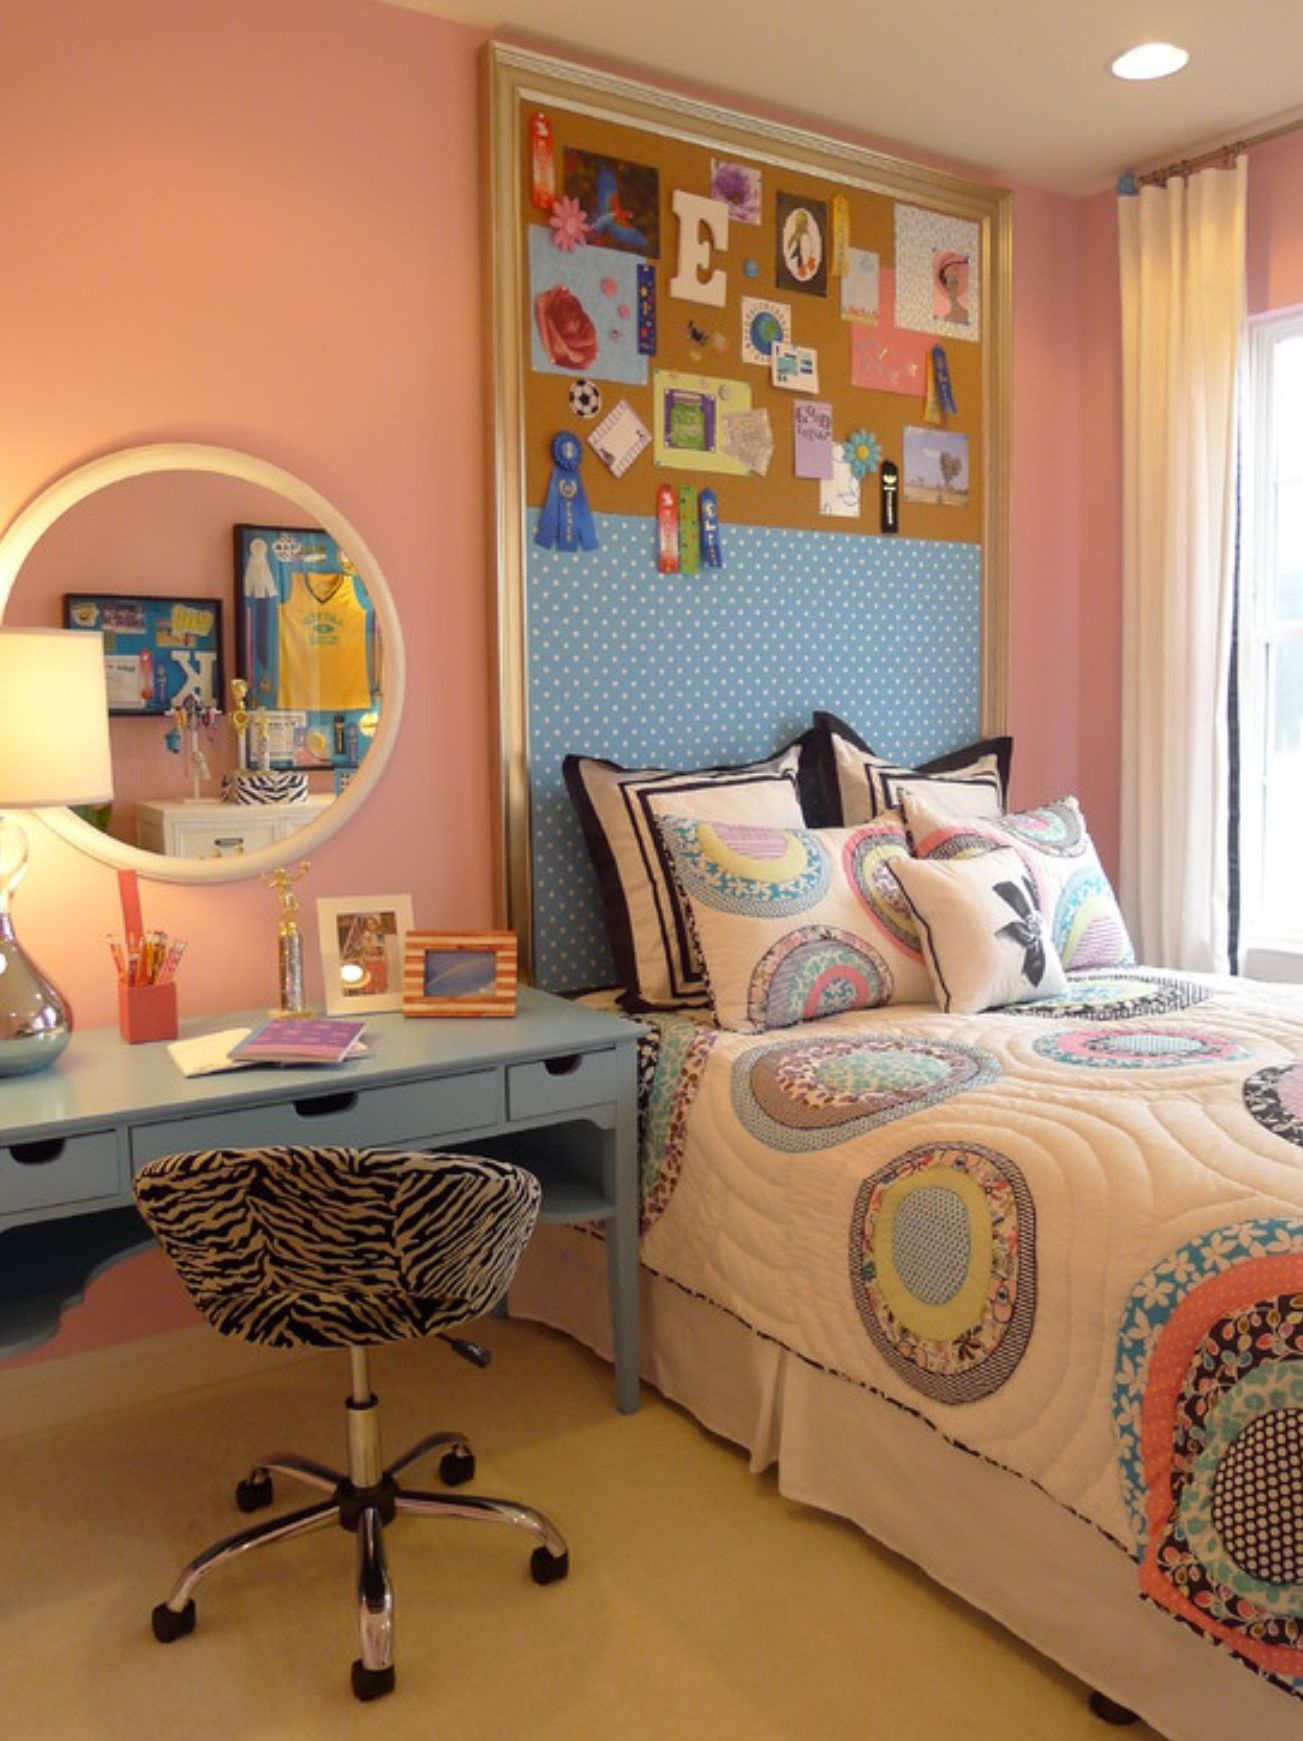 Beds Astounding Dorm Room Quilts With White